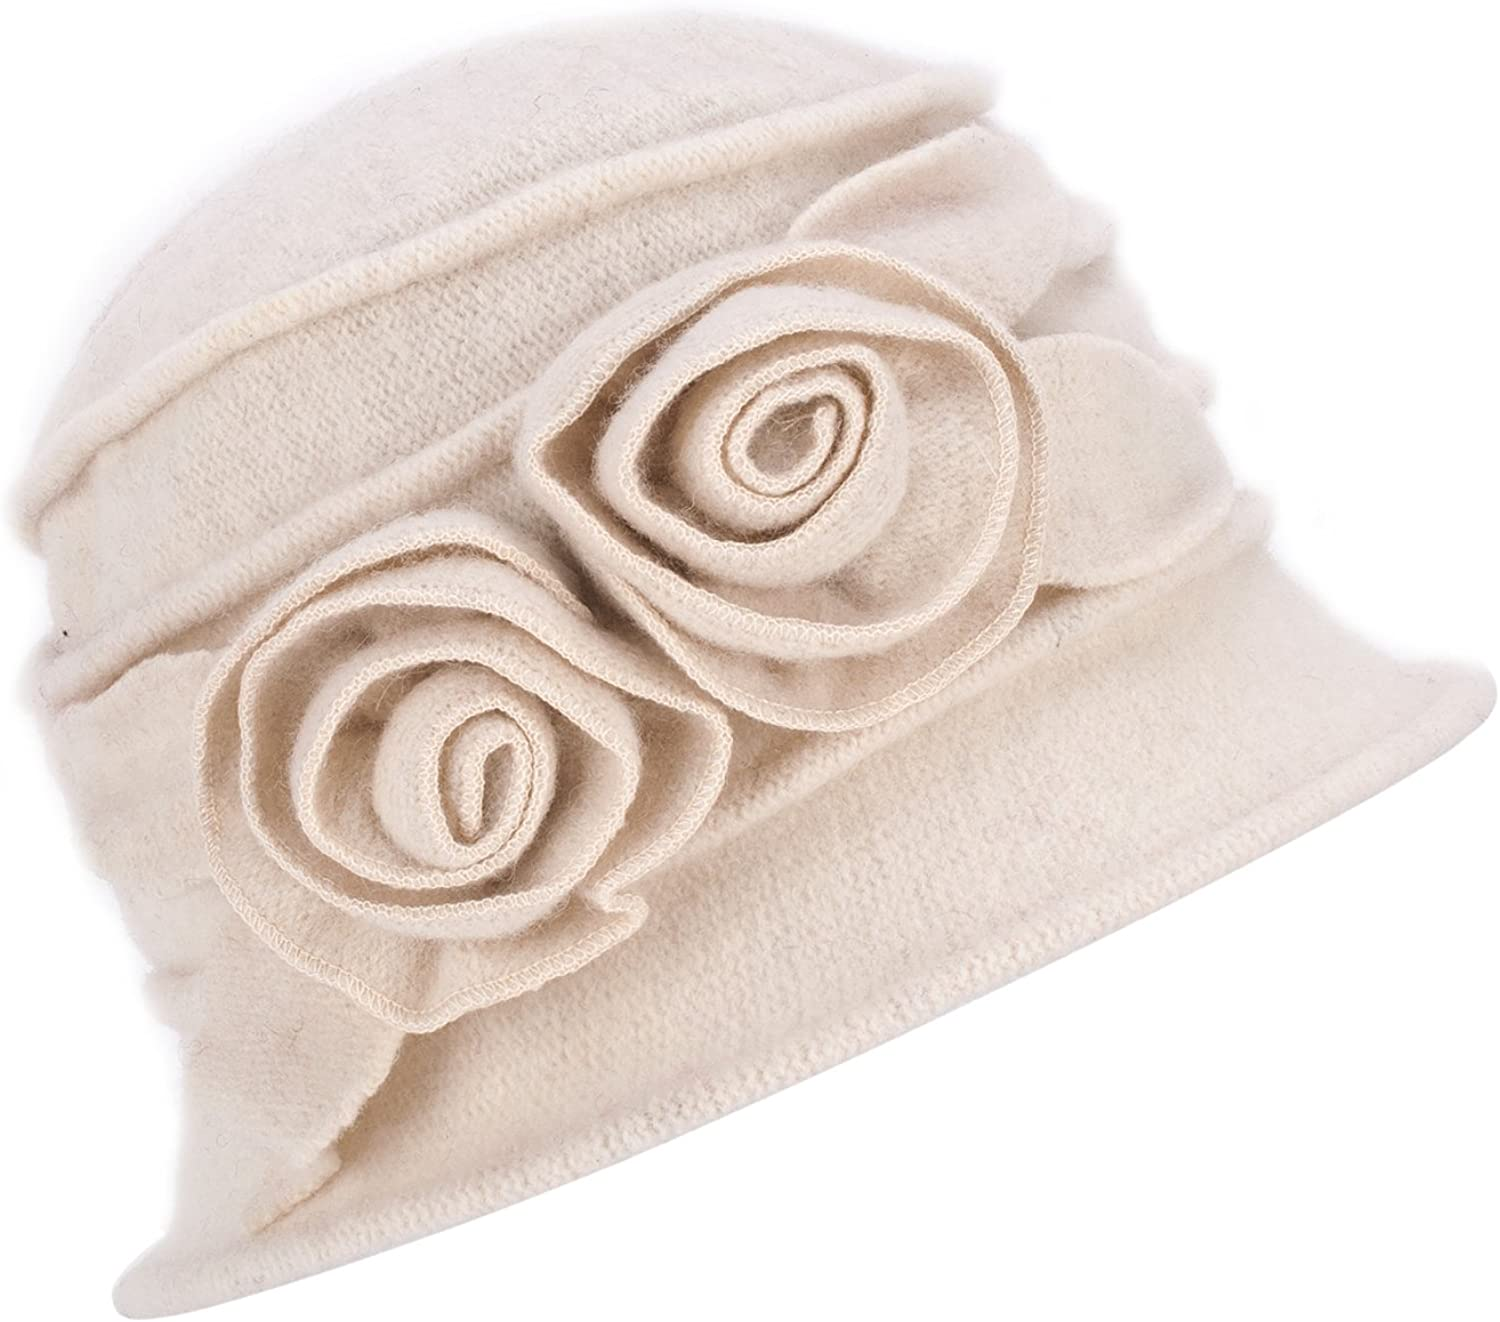 1920s Style Hats 1920s Gatsby Womens Flower Wool Warm Beanie Bow Hat Cap Crushable A287  AT vintagedancer.com